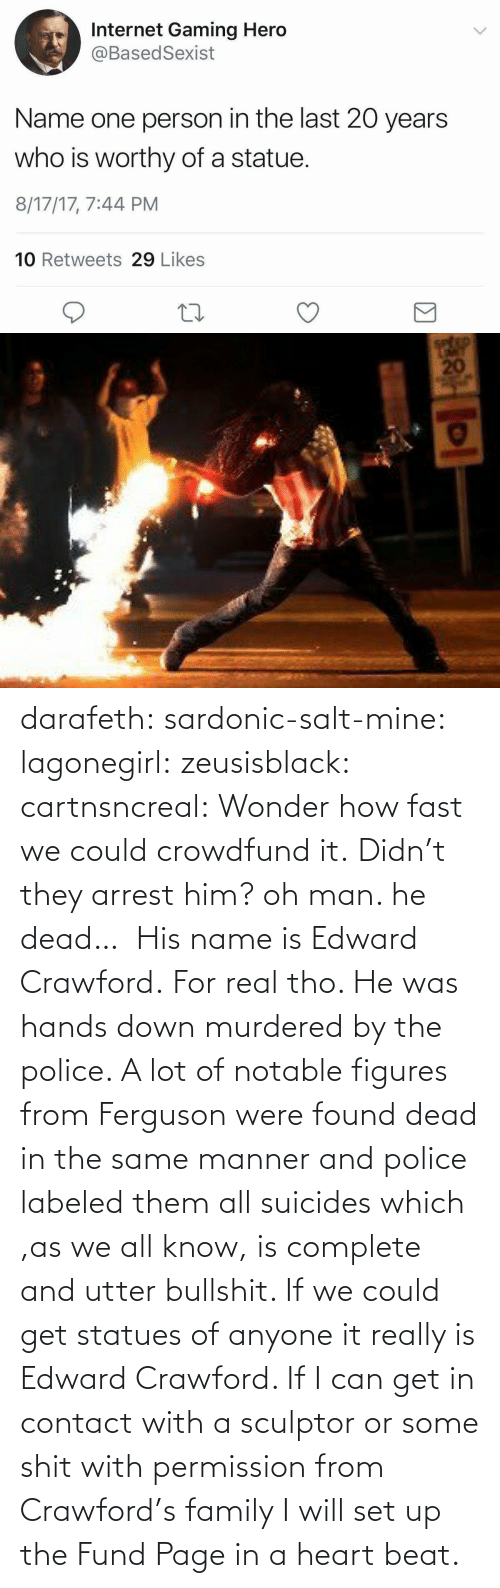 same: darafeth: sardonic-salt-mine:  lagonegirl:  zeusisblack:  cartnsncreal:   Wonder how fast we could crowdfund it.    Didn't they arrest him?  oh man. he dead…   His name is Edward Crawford.   For real tho. He was hands down murdered by the police. A lot of notable figures from Ferguson were found dead in the same manner and police labeled them all suicides which ,as we all know, is complete and utter bullshit.  If we could get statues of anyone it really is Edward Crawford. If I can get in contact with a sculptor or some shit with permission from Crawford's family I will set up the Fund Page in a heart beat.